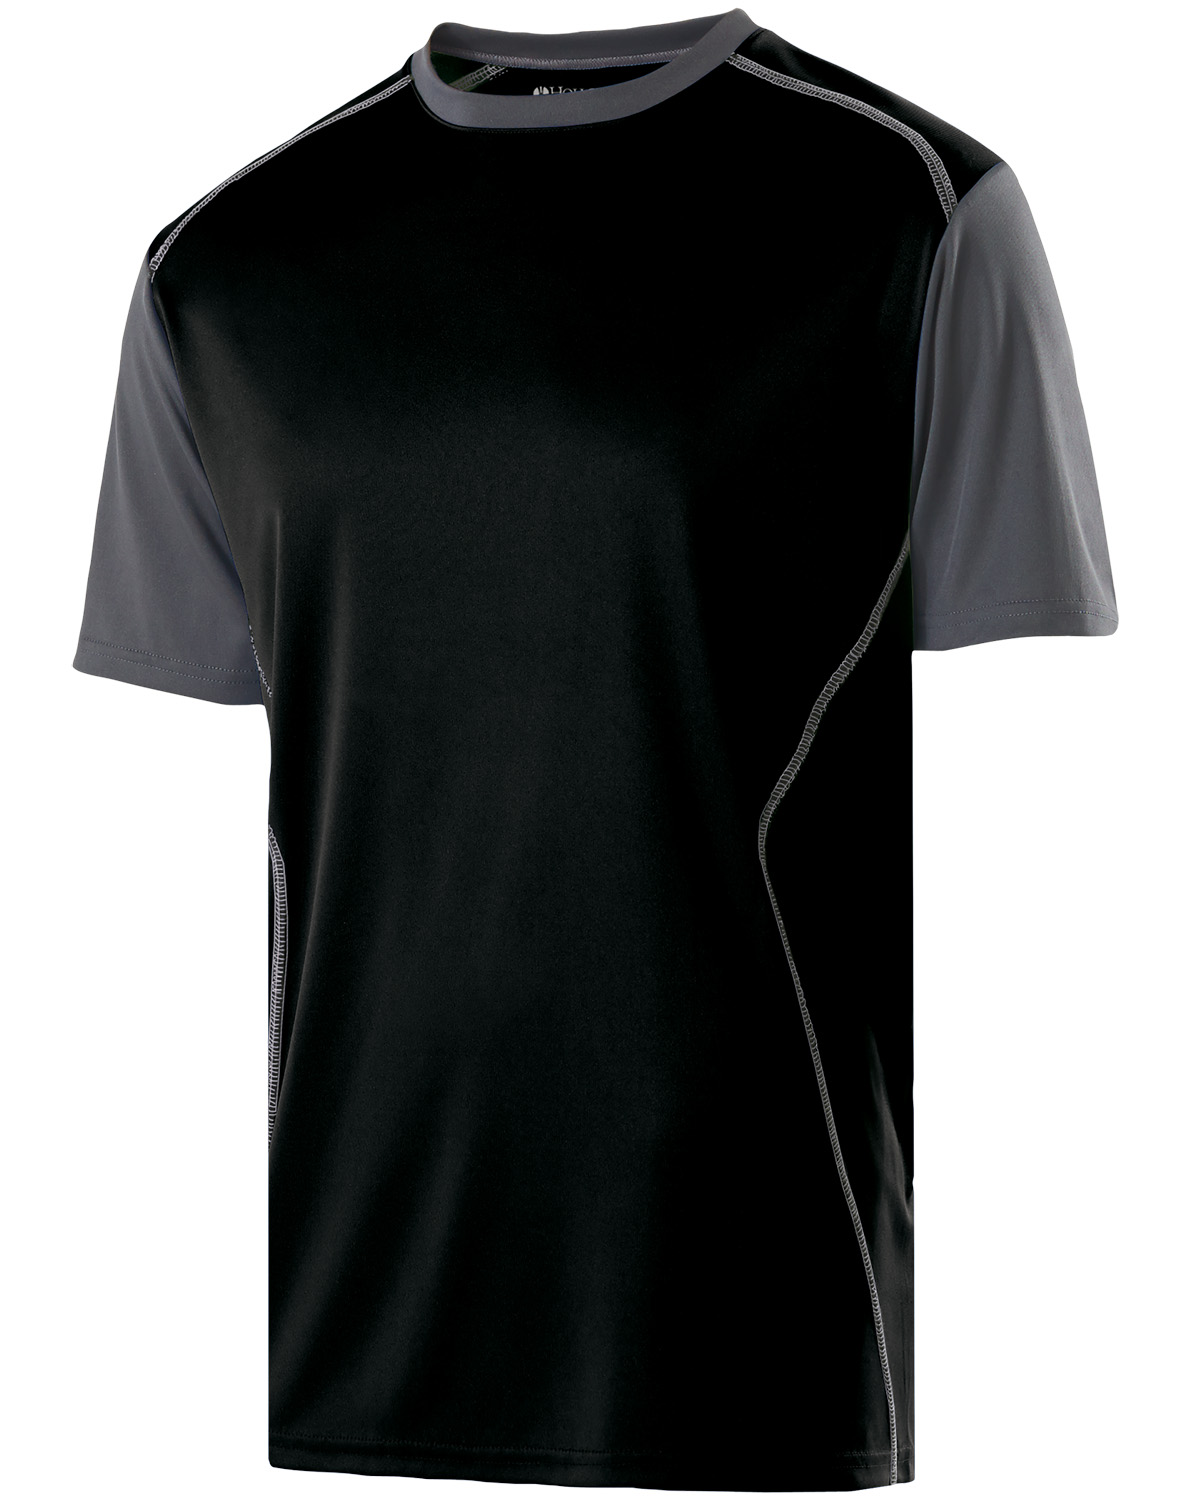 Holloway 222501 - Adult Polyester Short Sleeve Piston ...